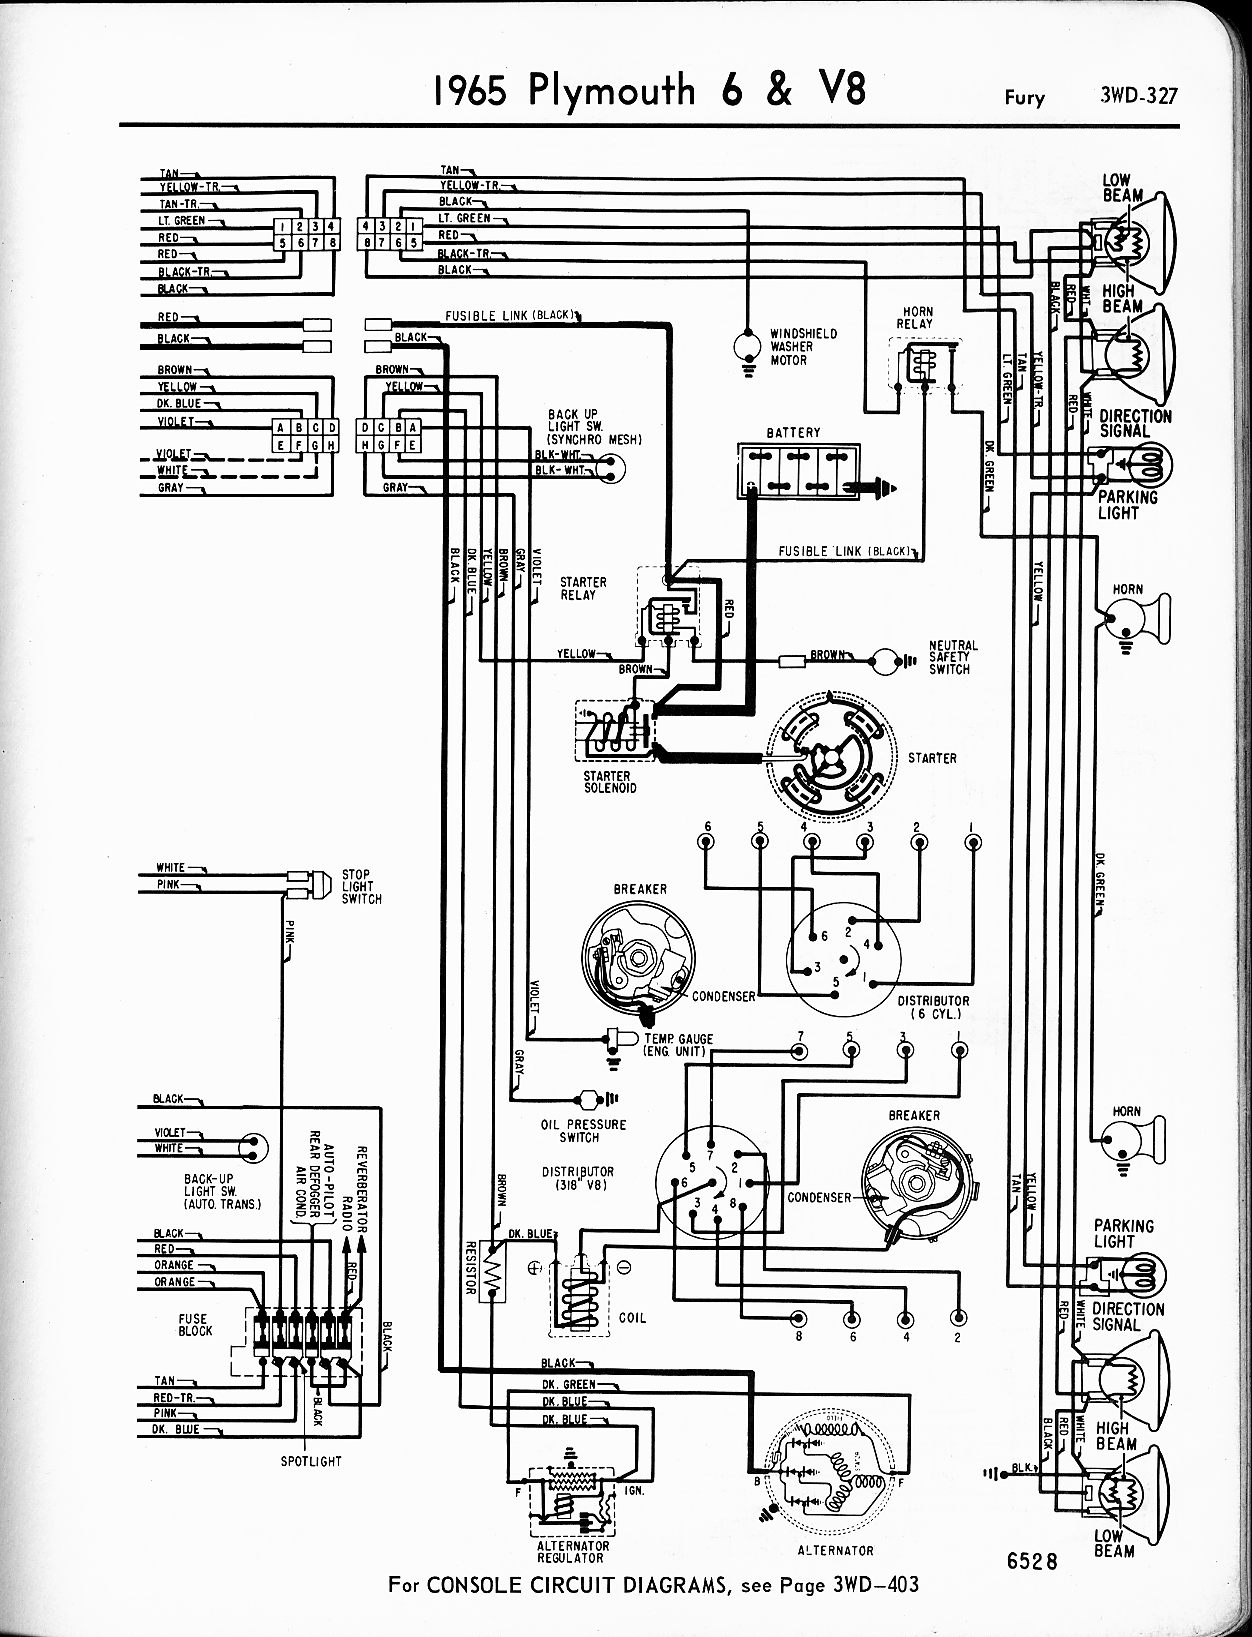 1959 cadillac radio wiring diagram 1956 1965 plymouth    wiring    the old car manual project  1956 1965 plymouth    wiring    the old car manual project